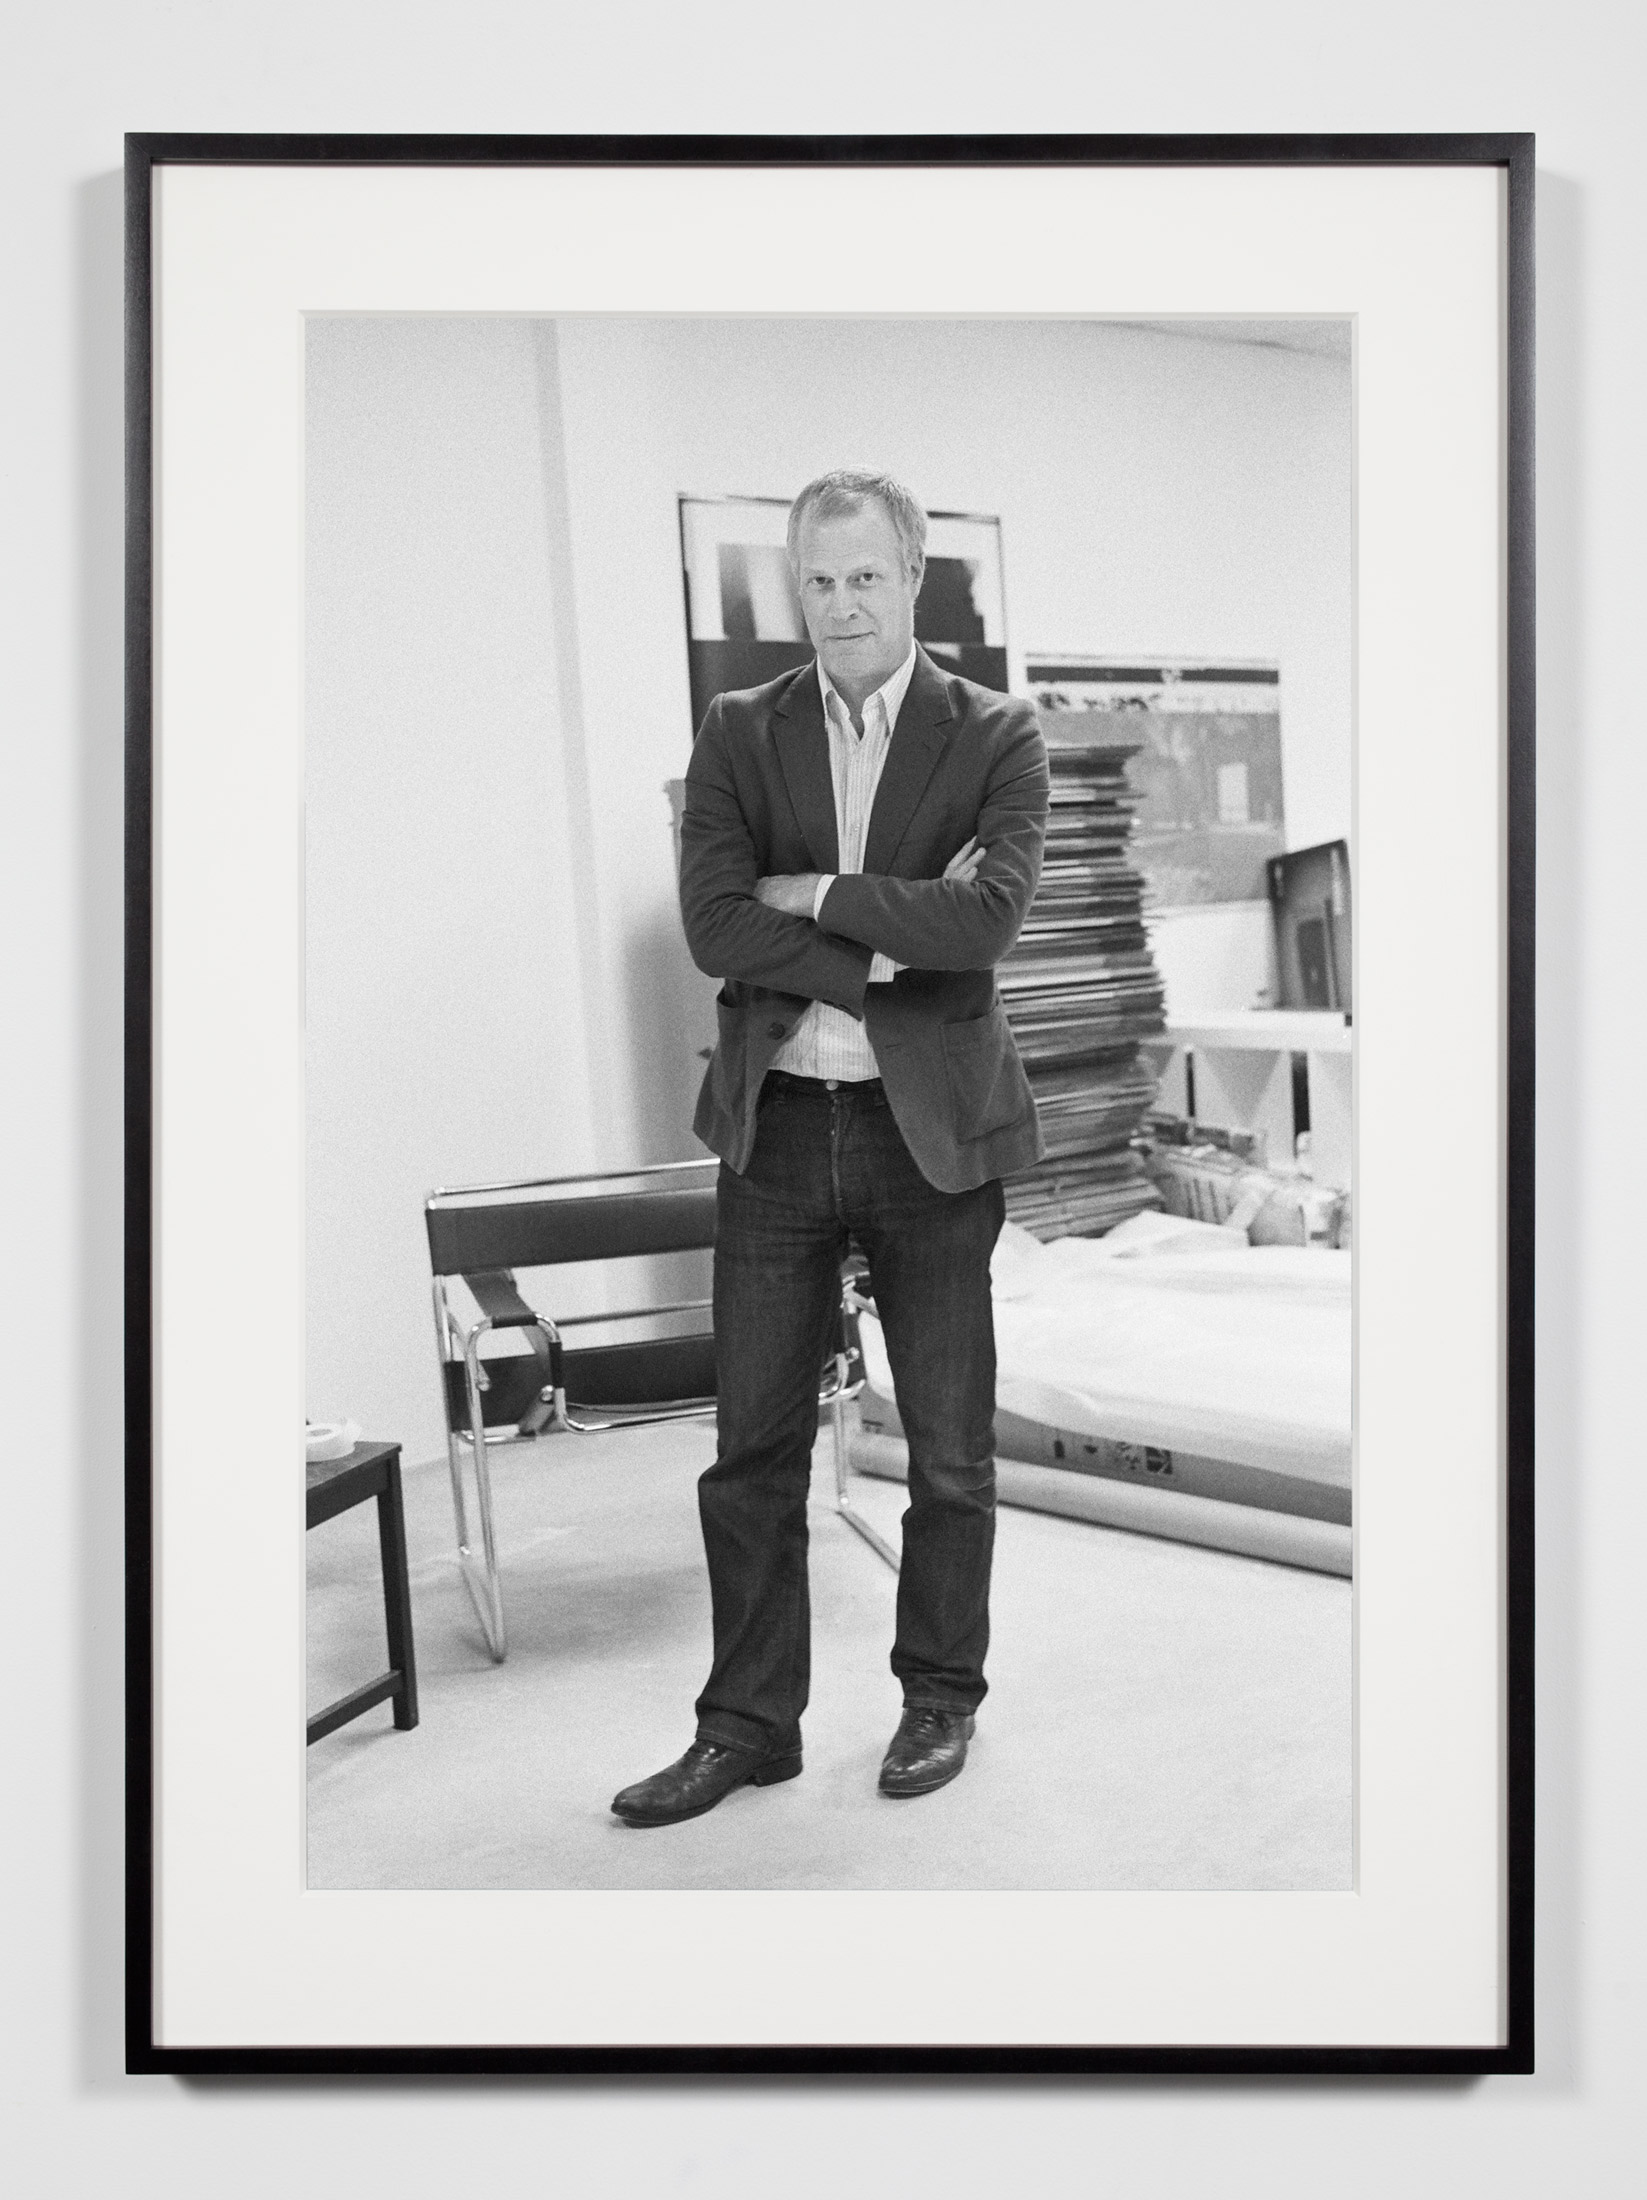 Art Fair Director, Los Angeles, California, July 20, 2008    2011   Epson Ultrachrome K3 archival ink jet print on Hahnemühle Photo Rag paper  36 3/8 x 26 3/8 inches   Industrial Portraits, 2008–